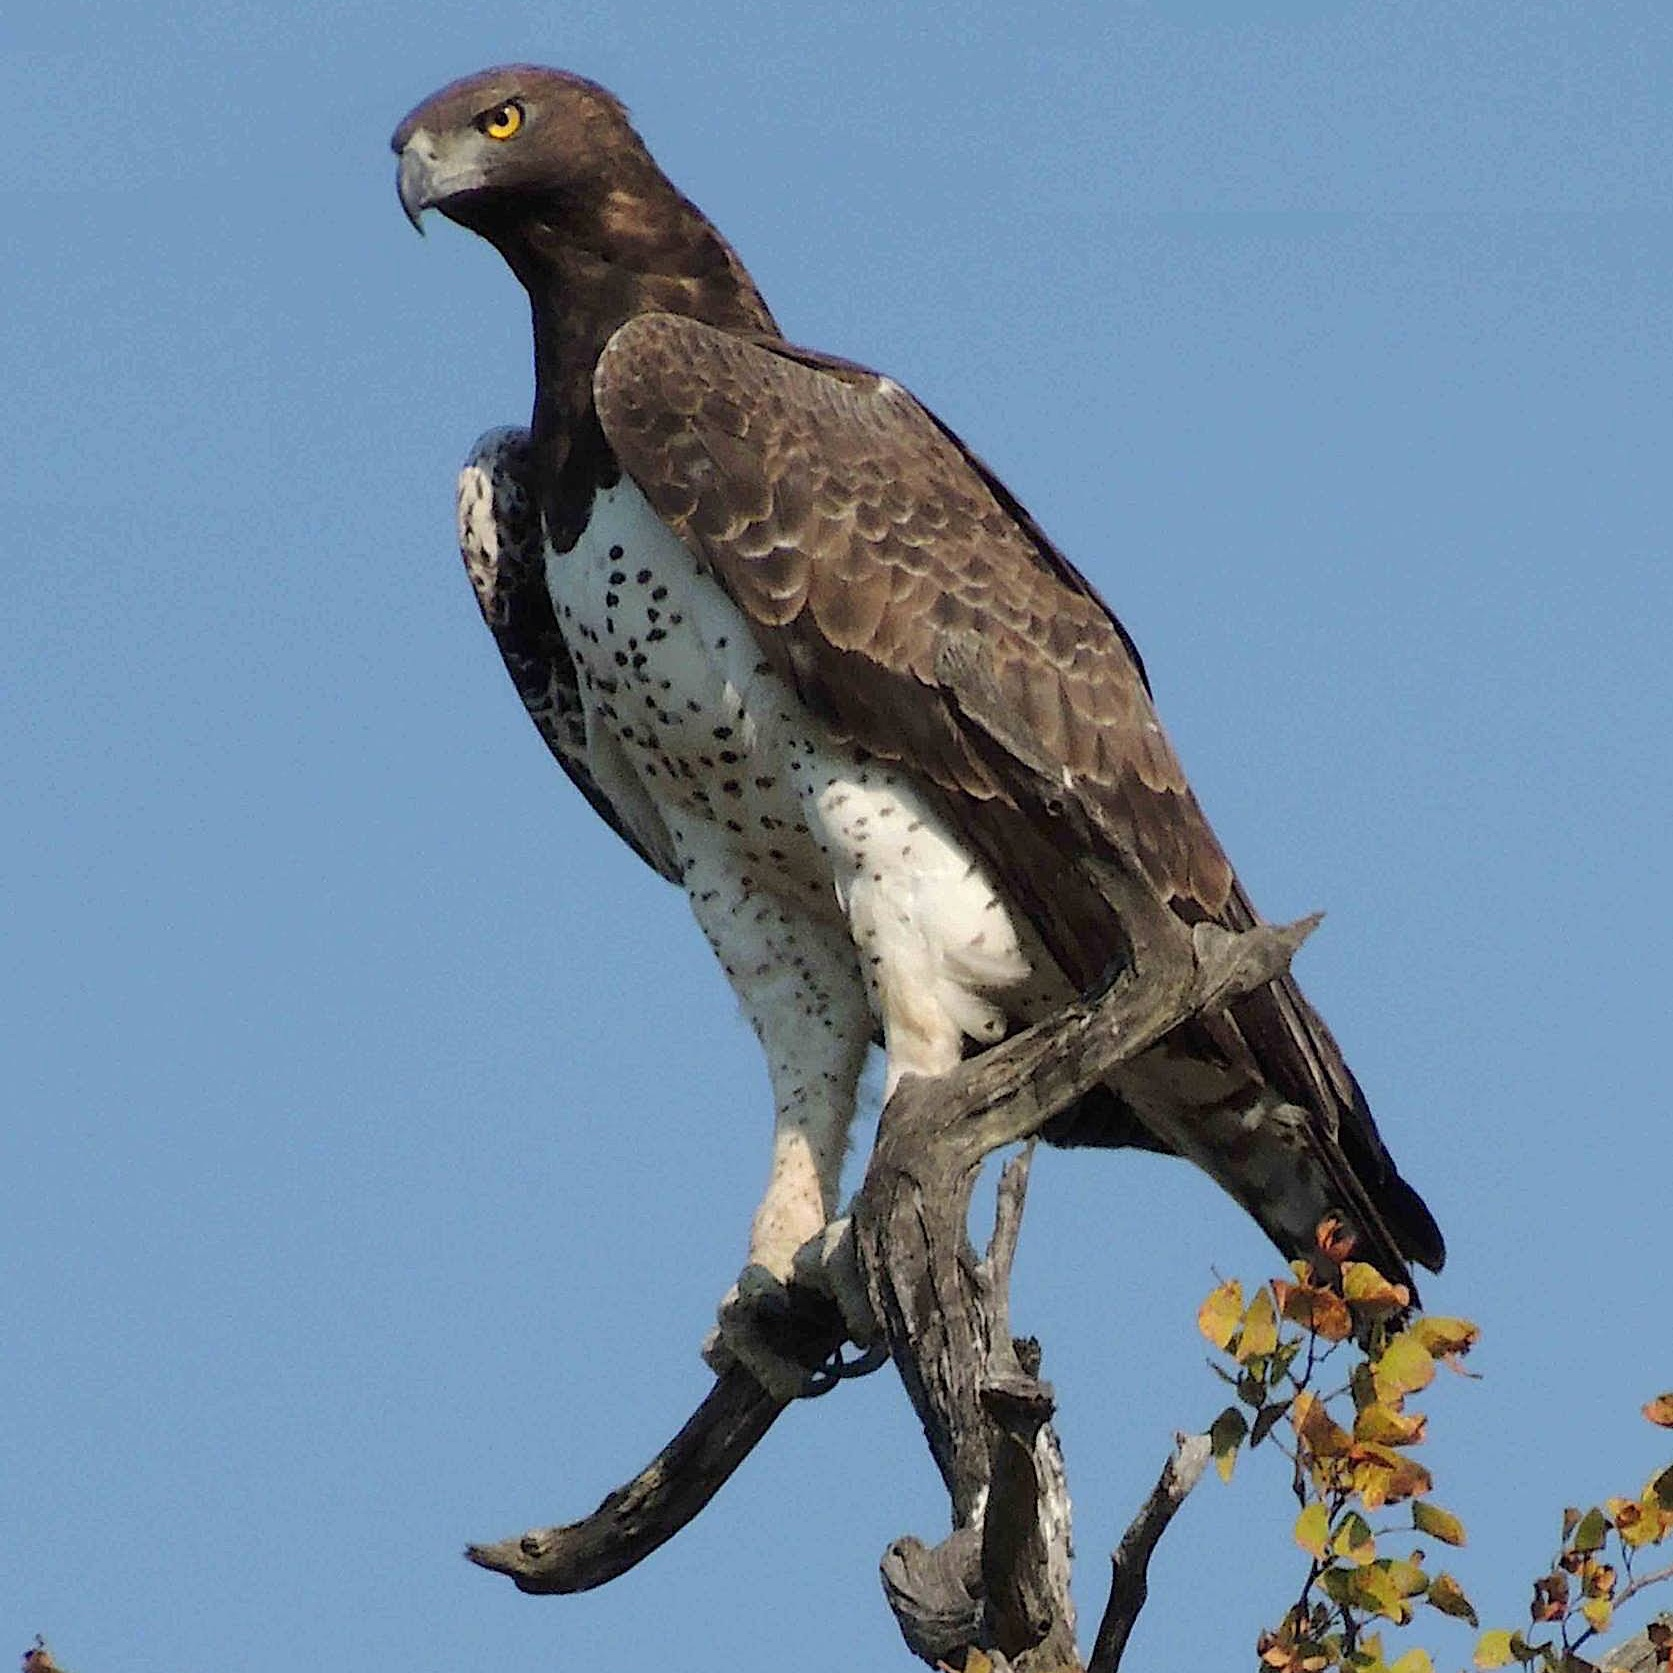 MARTIAL EAGLE, AFRICA'S LARGEST, MOST POWERFUL WEIGHS IN AT ALMOST 14 PUNDS (6.4KG) AND HAS AN ADULT WINGSPAN OF BETWEEN 6.5 FEET (200 CM) TO 8.5 FEET (260 CM) IMAGE: MEGAN MURGATROYD THANKS TO  AVIAN EDUCATION AND CONSERVATION NETWORK